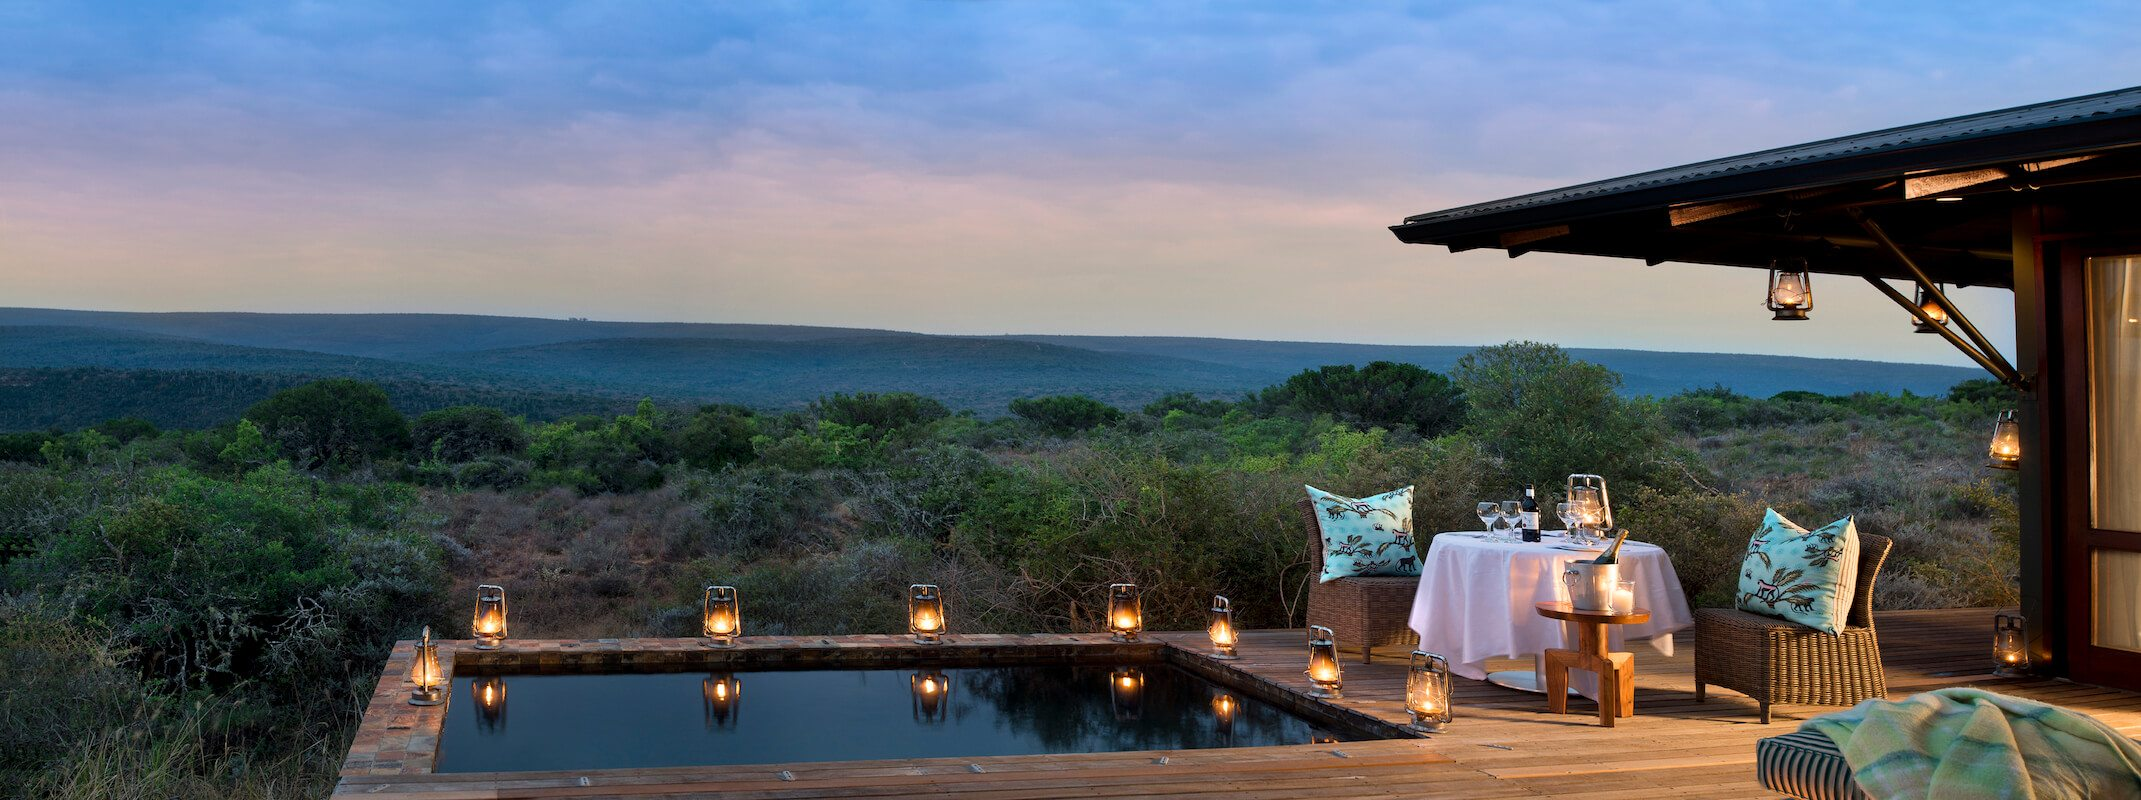 SouthAfrica_GardenRoute_KwandwePrivateGameReserve_EccaLodge_Private Dining